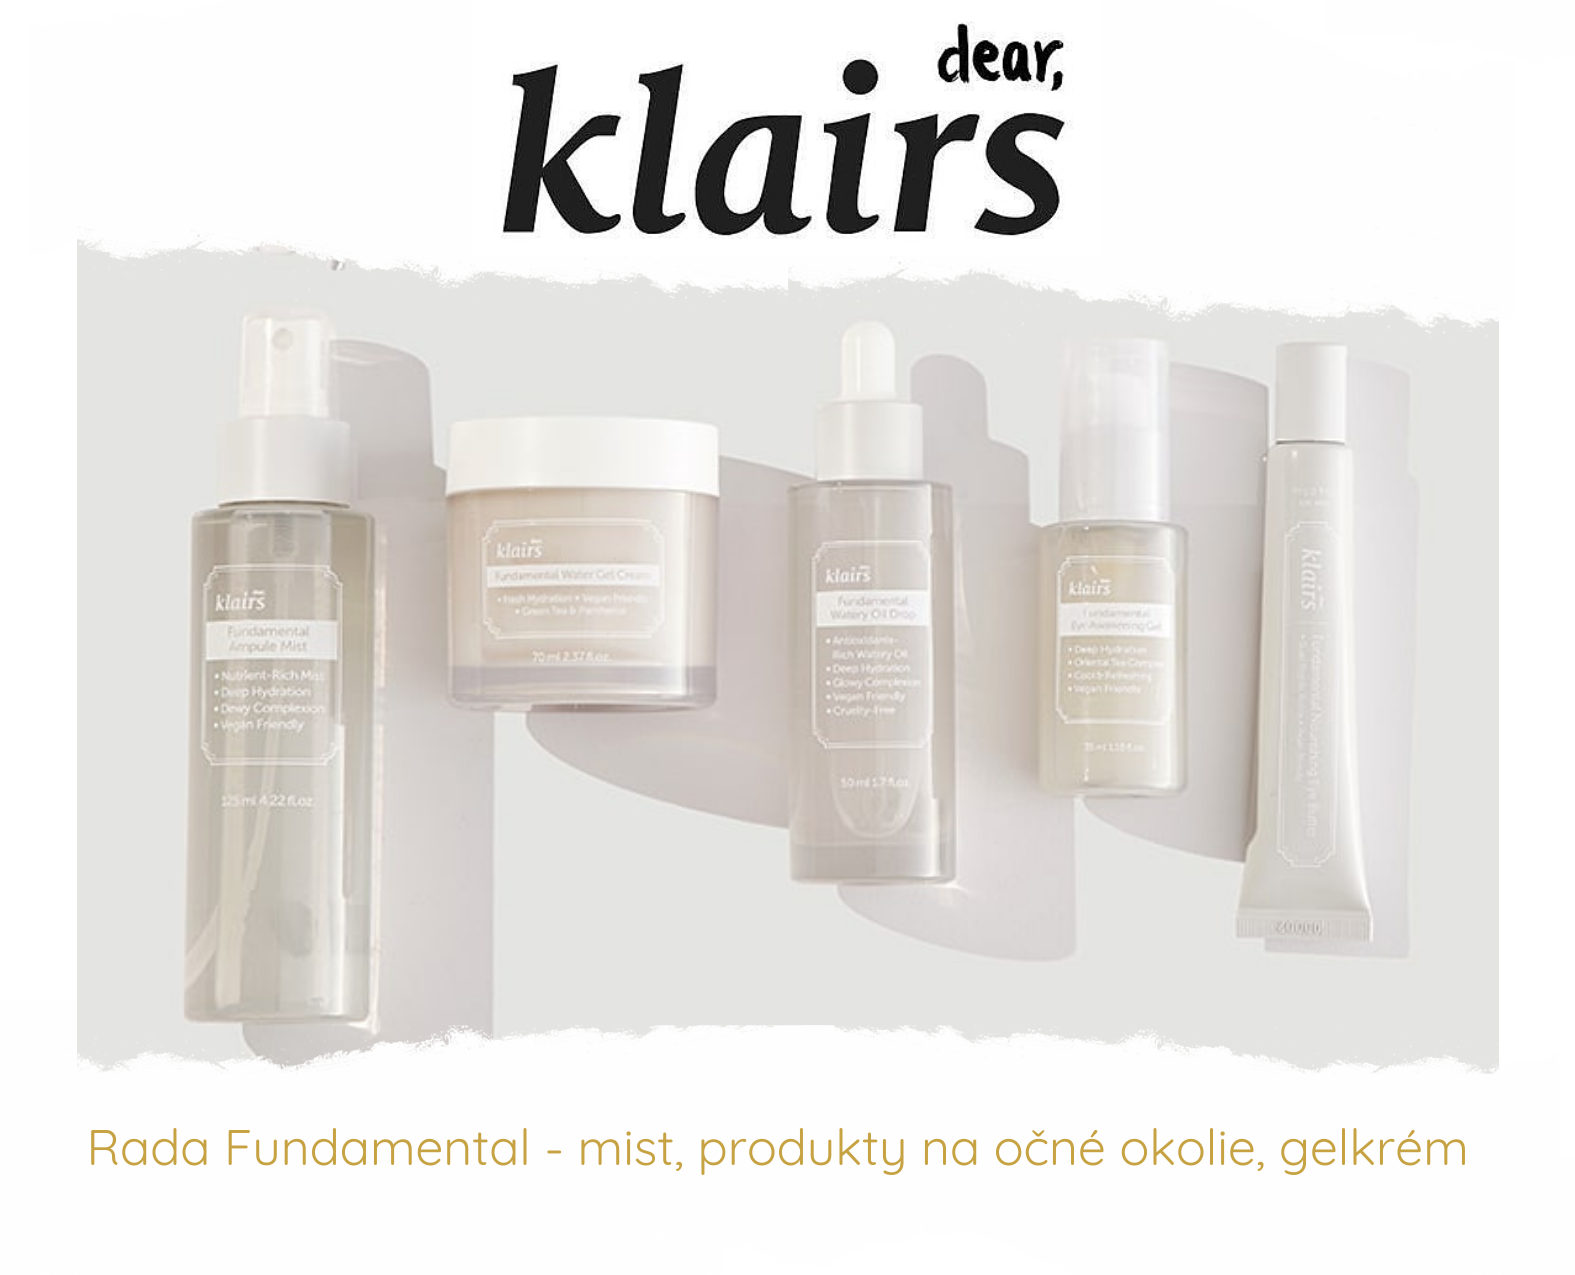 Dear, Klairs Fundamental